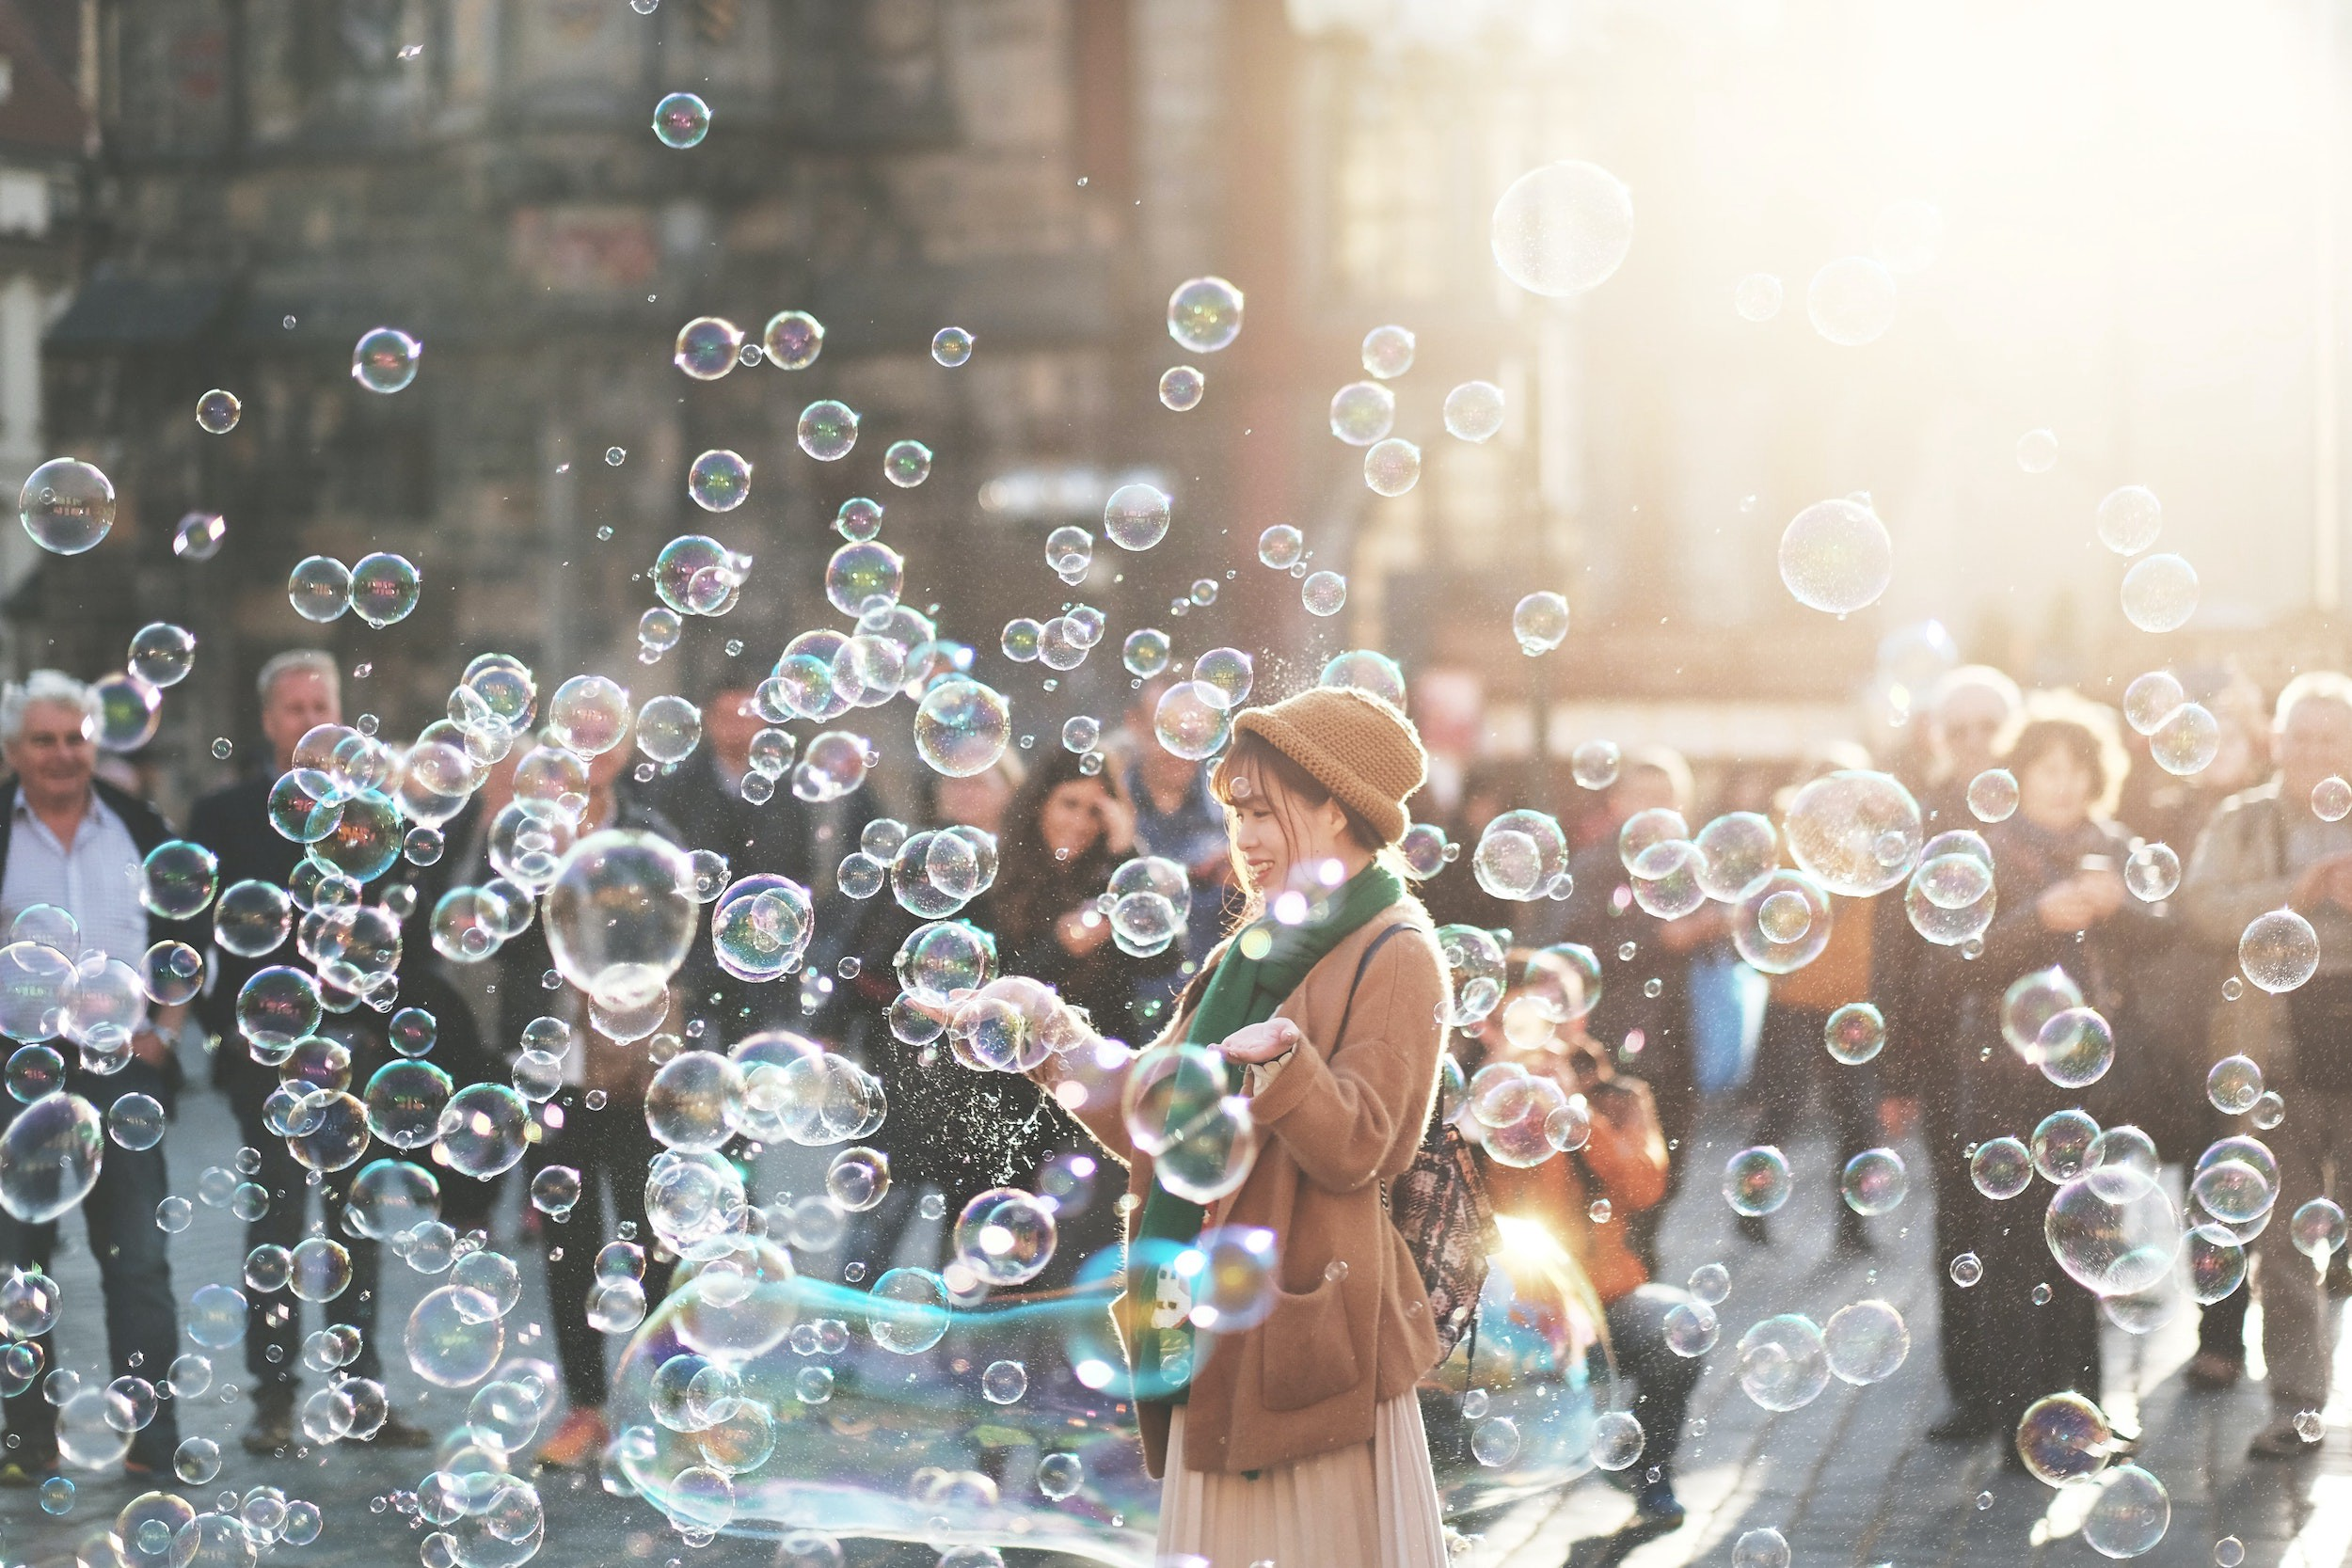 Woman stands in swam of bubbles